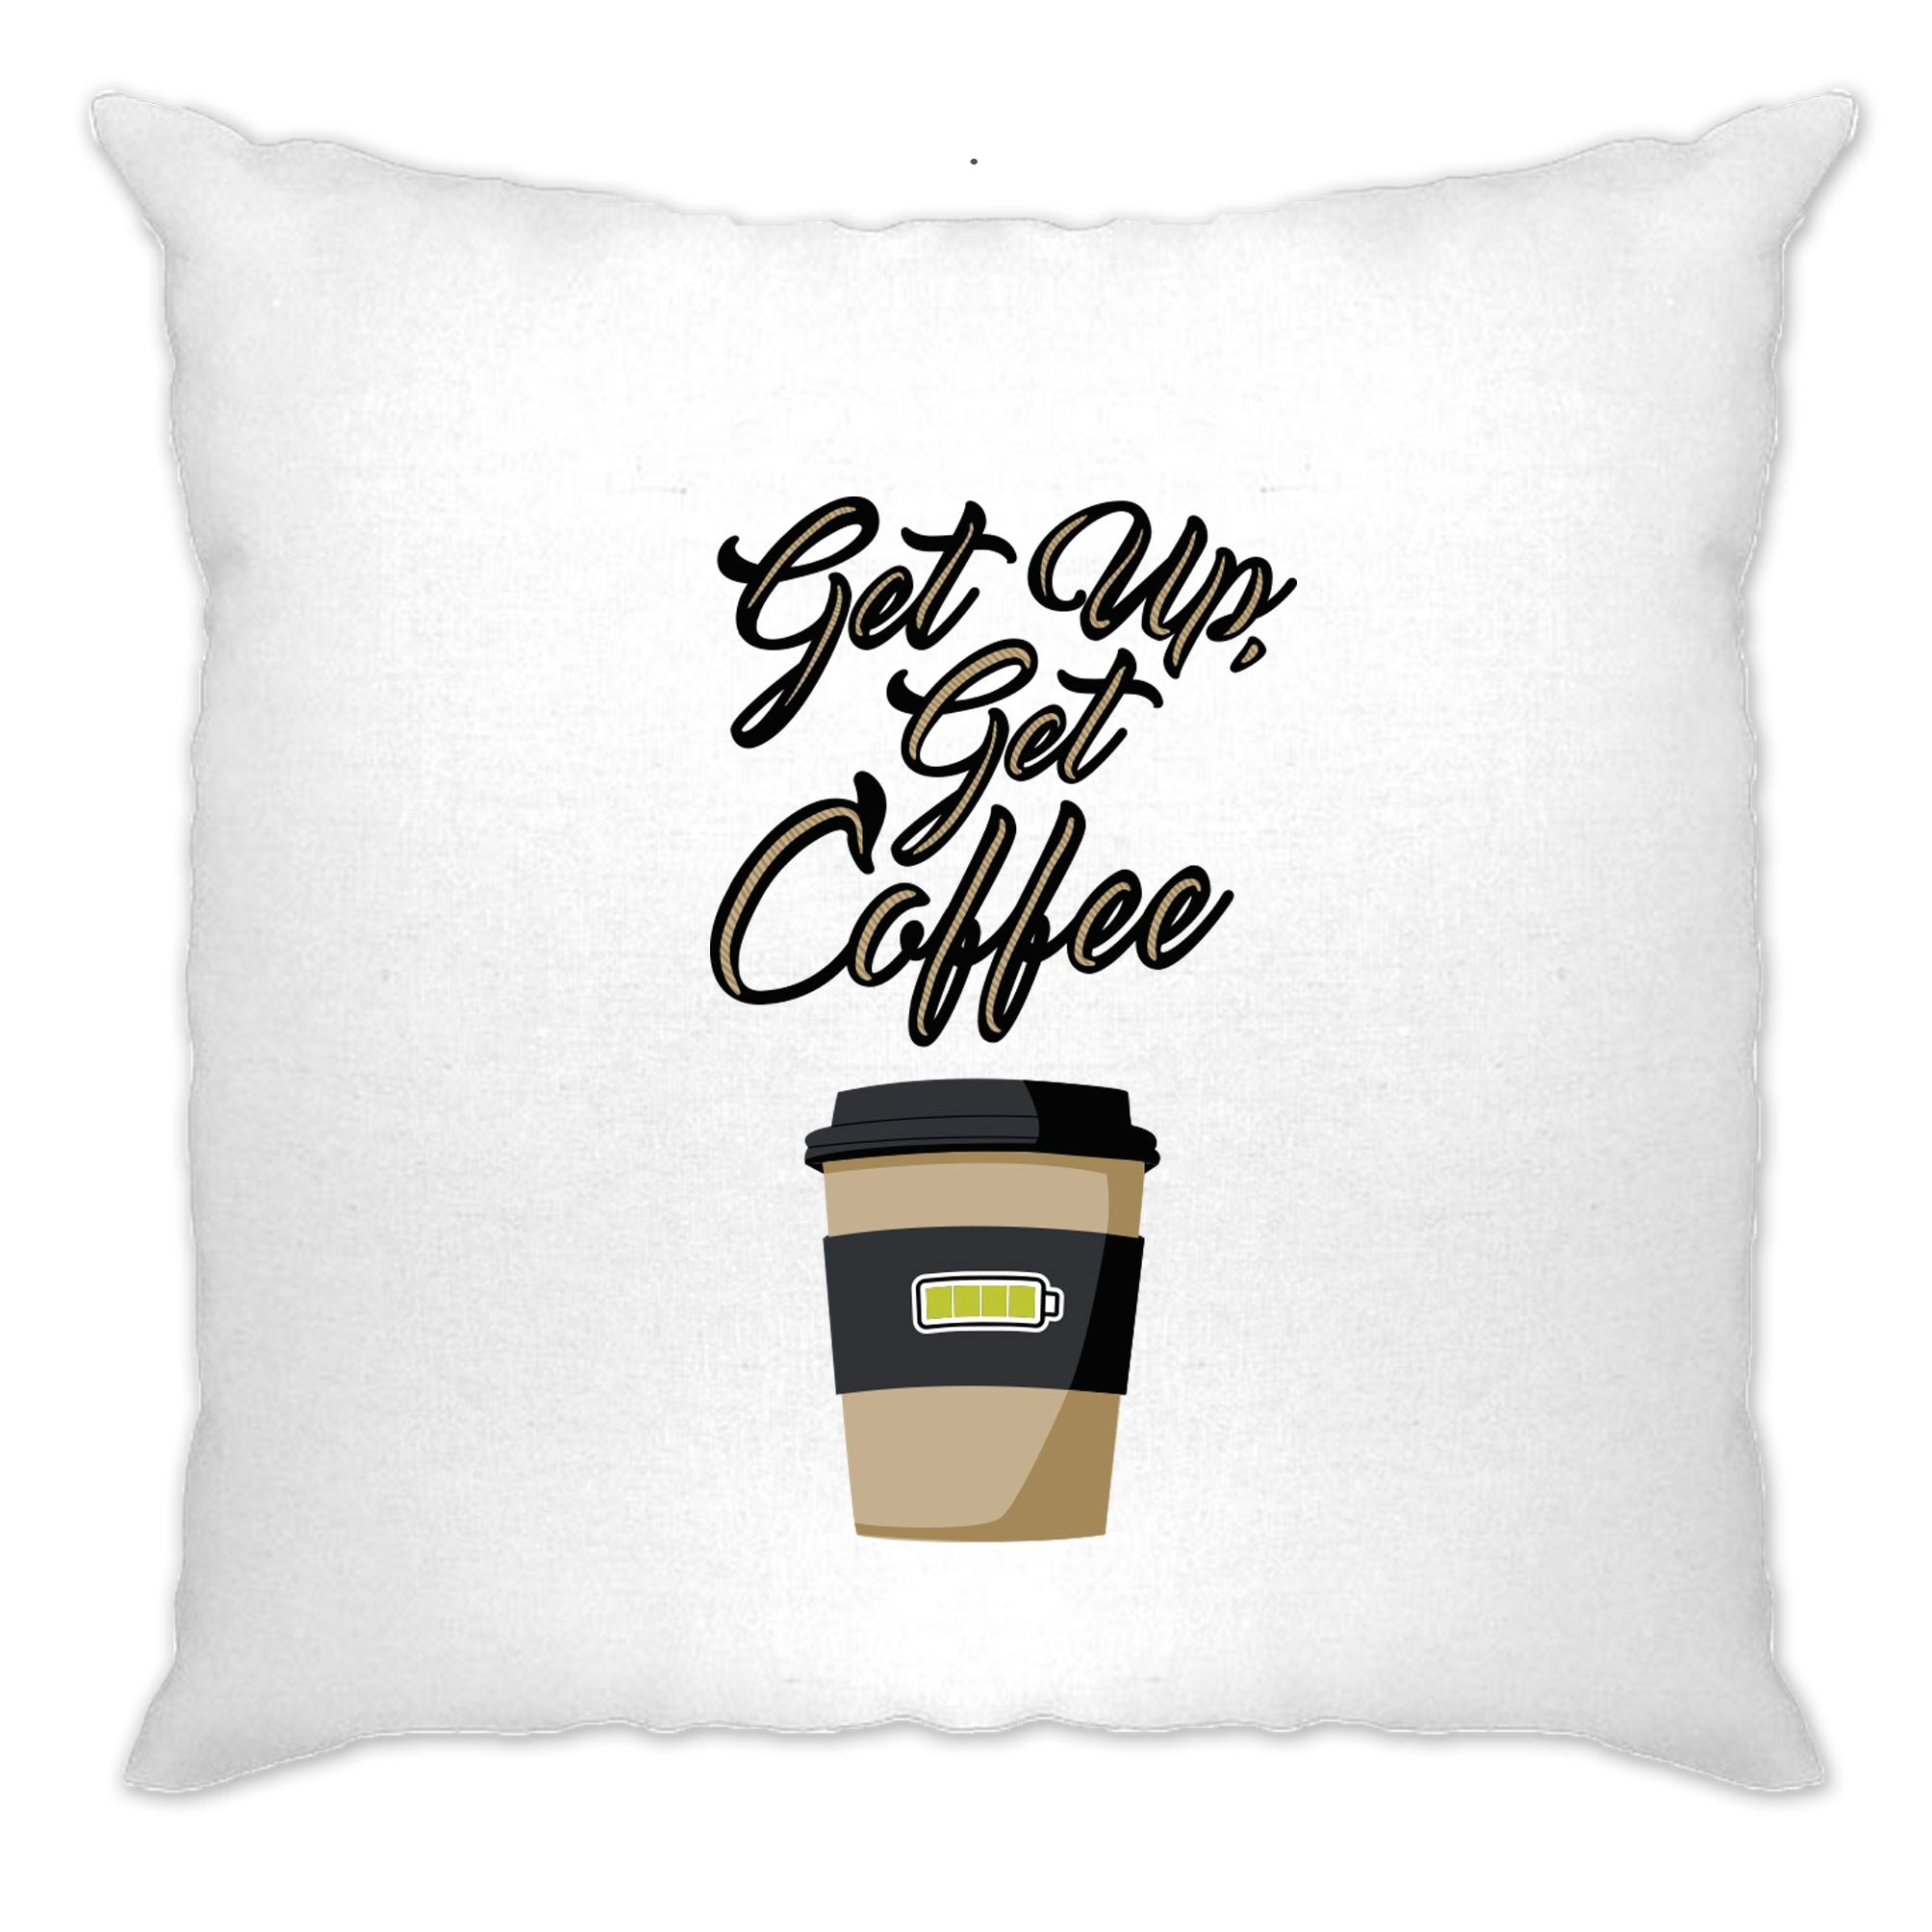 Morning Motivation Cushion Cover Get Up, Get Coffee Slogan